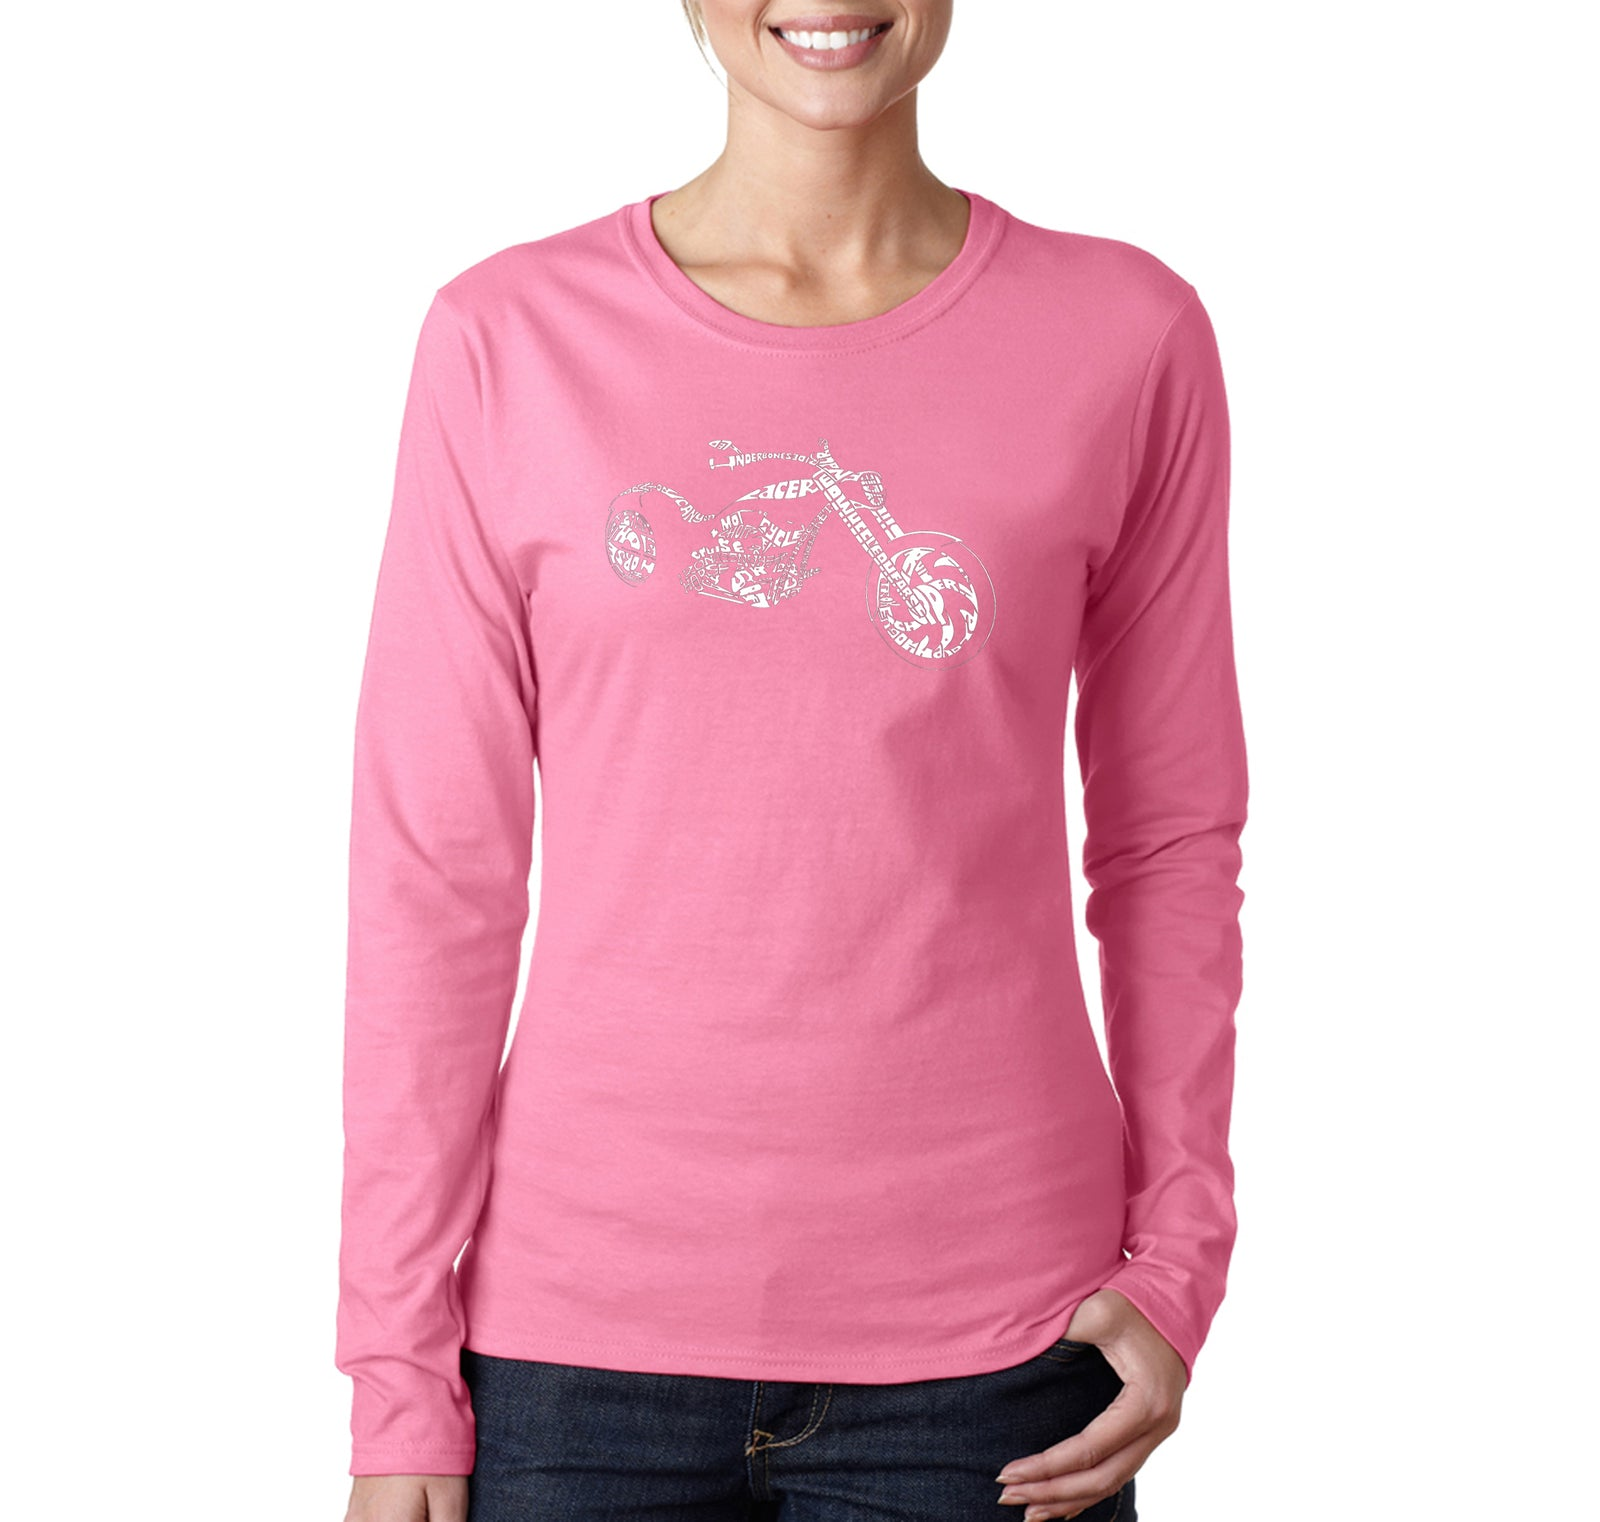 Women's Long Sleeve T-Shirt - MOTORCYCLE